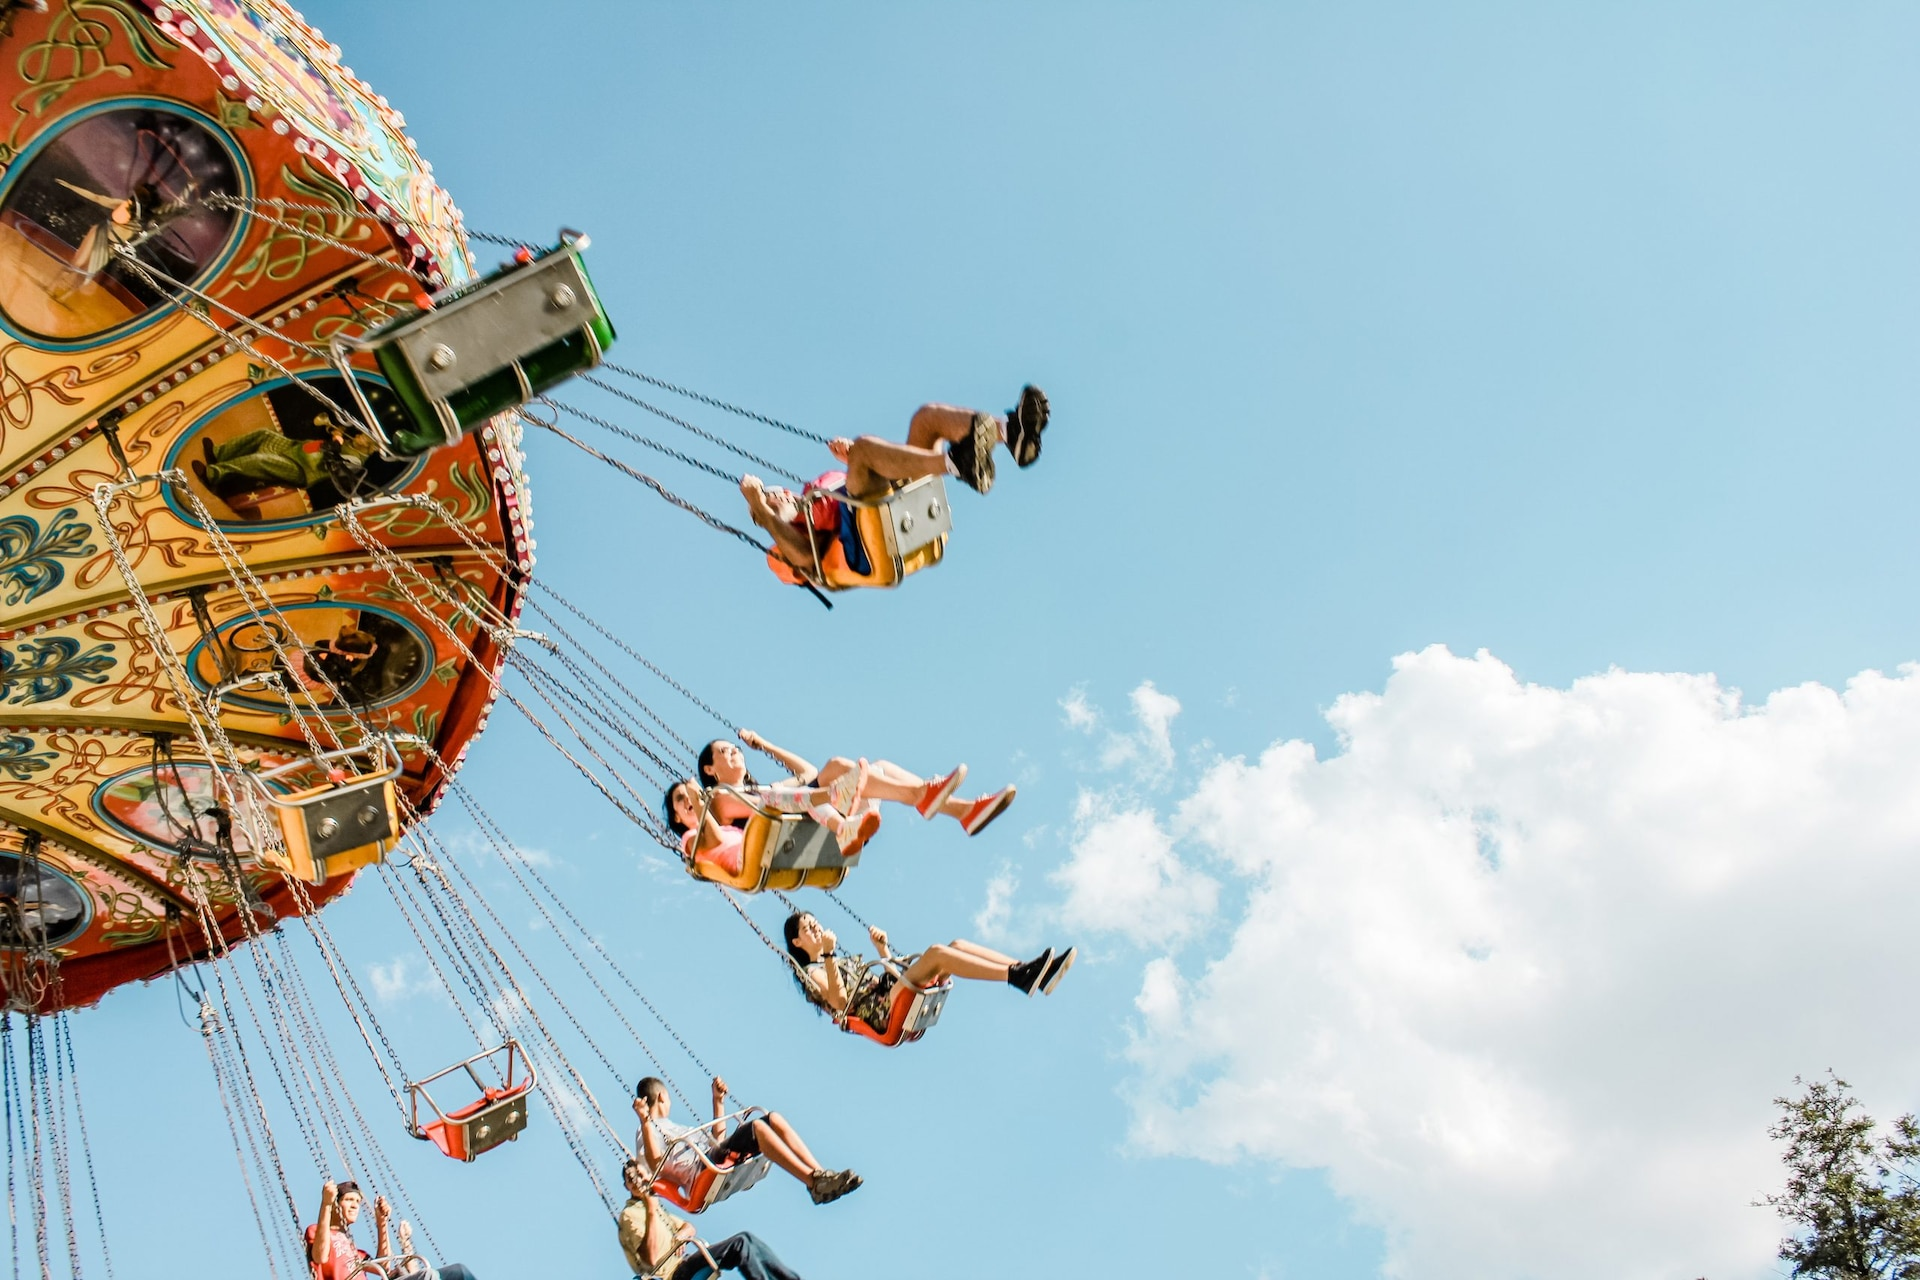 Which One Of These Is The Oldest Amusement Park In The World